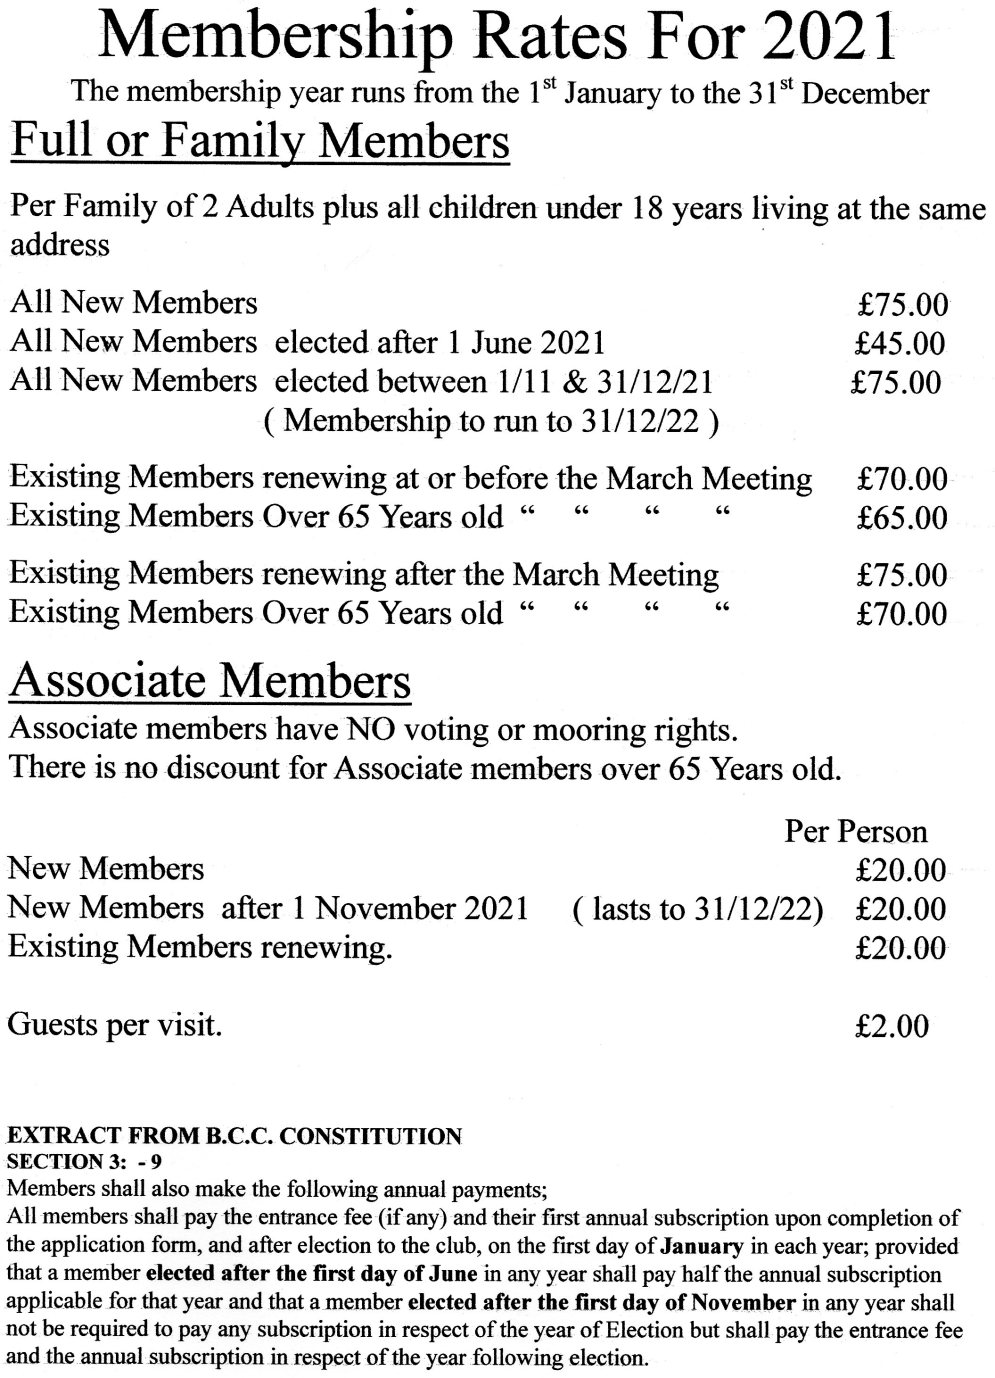 BCC Membership rates 2021